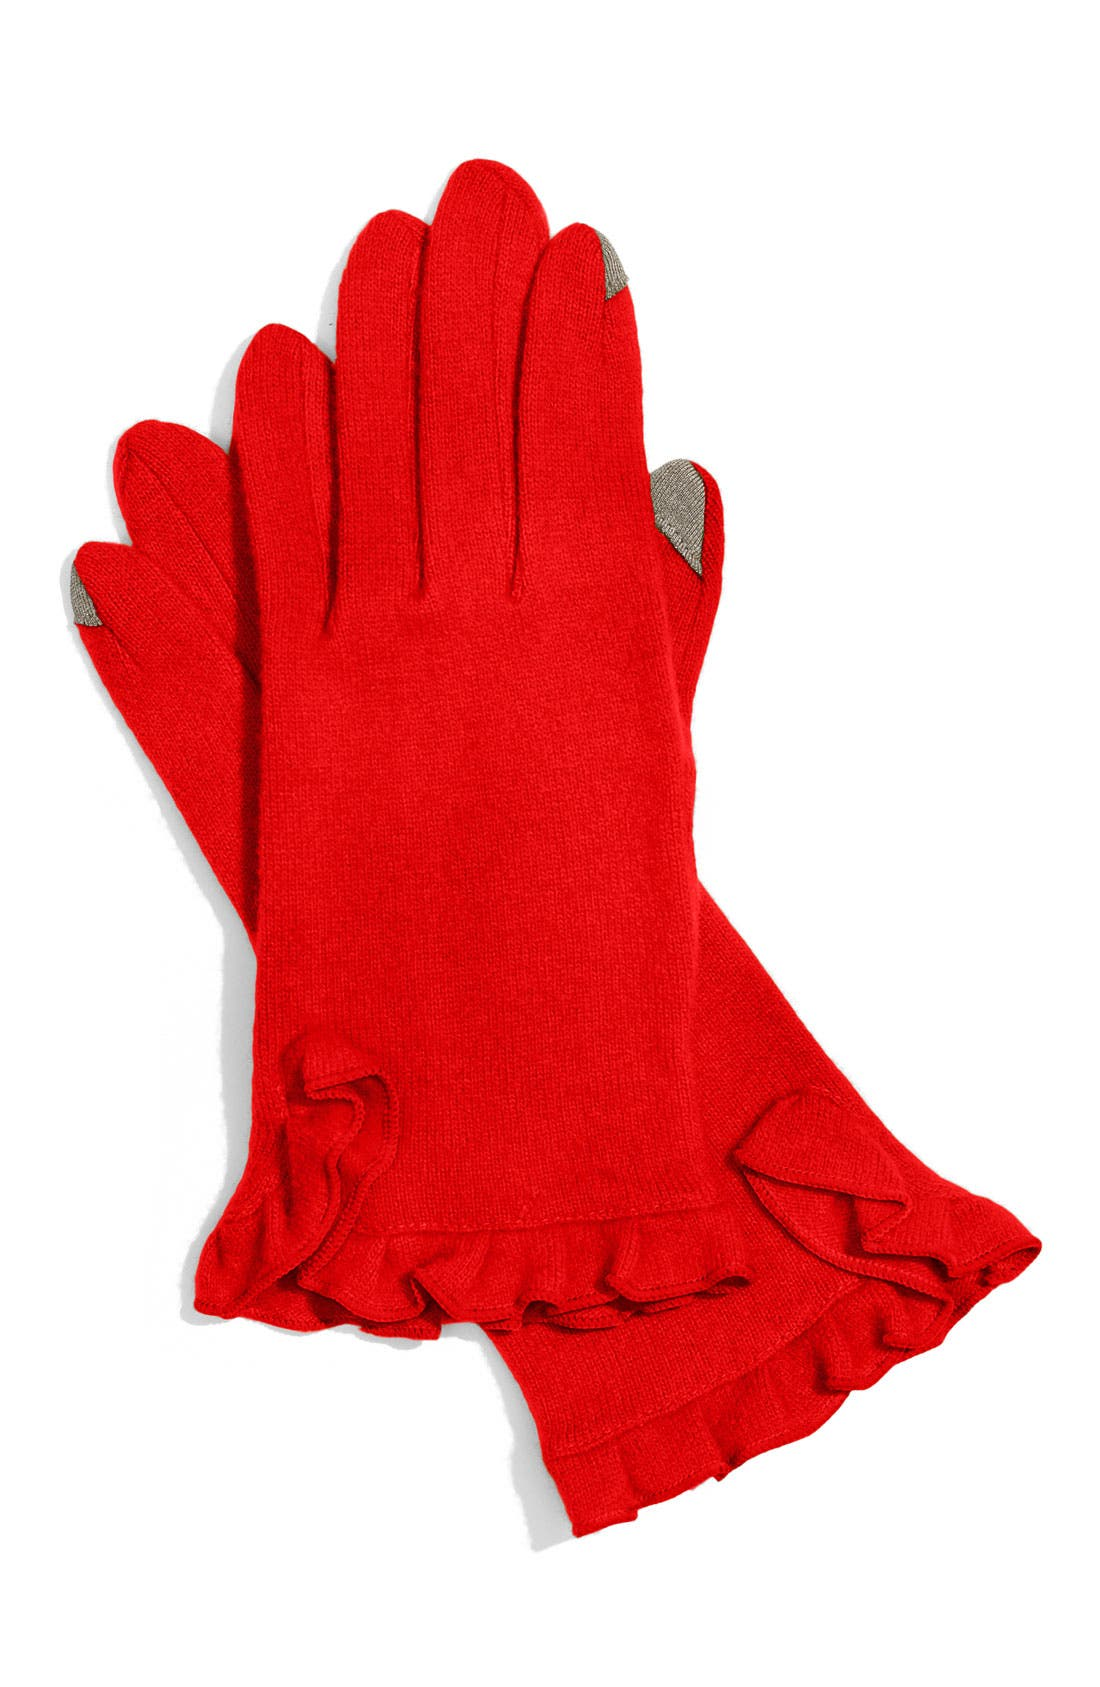 'Touch' Tech Gloves,                             Main thumbnail 1, color,                             Lacquer Red